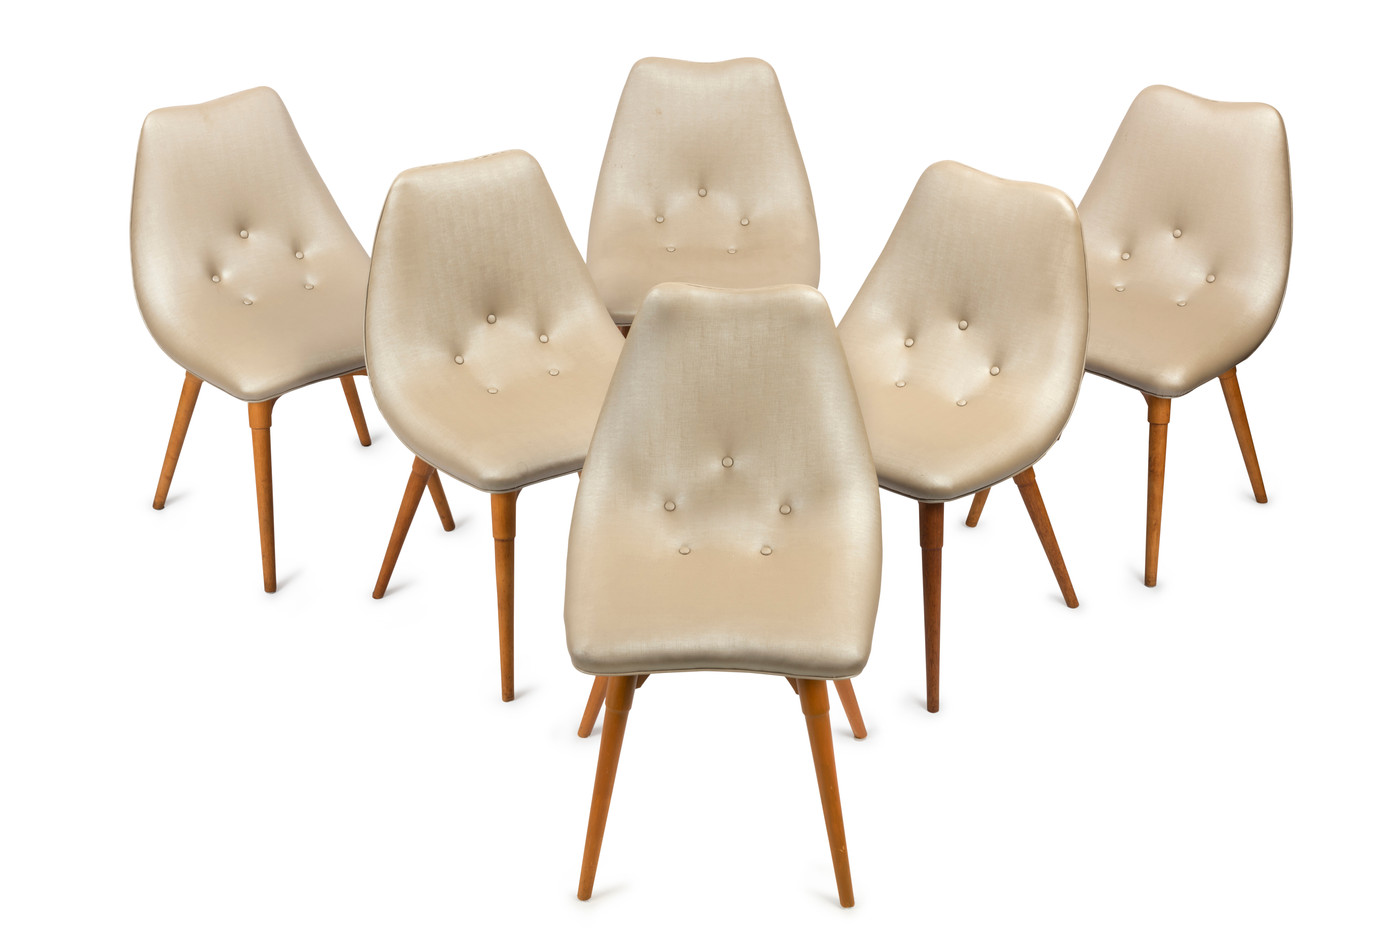 A set of fourteen D350 contour dining chairs designed by Grant Featherston, 1951